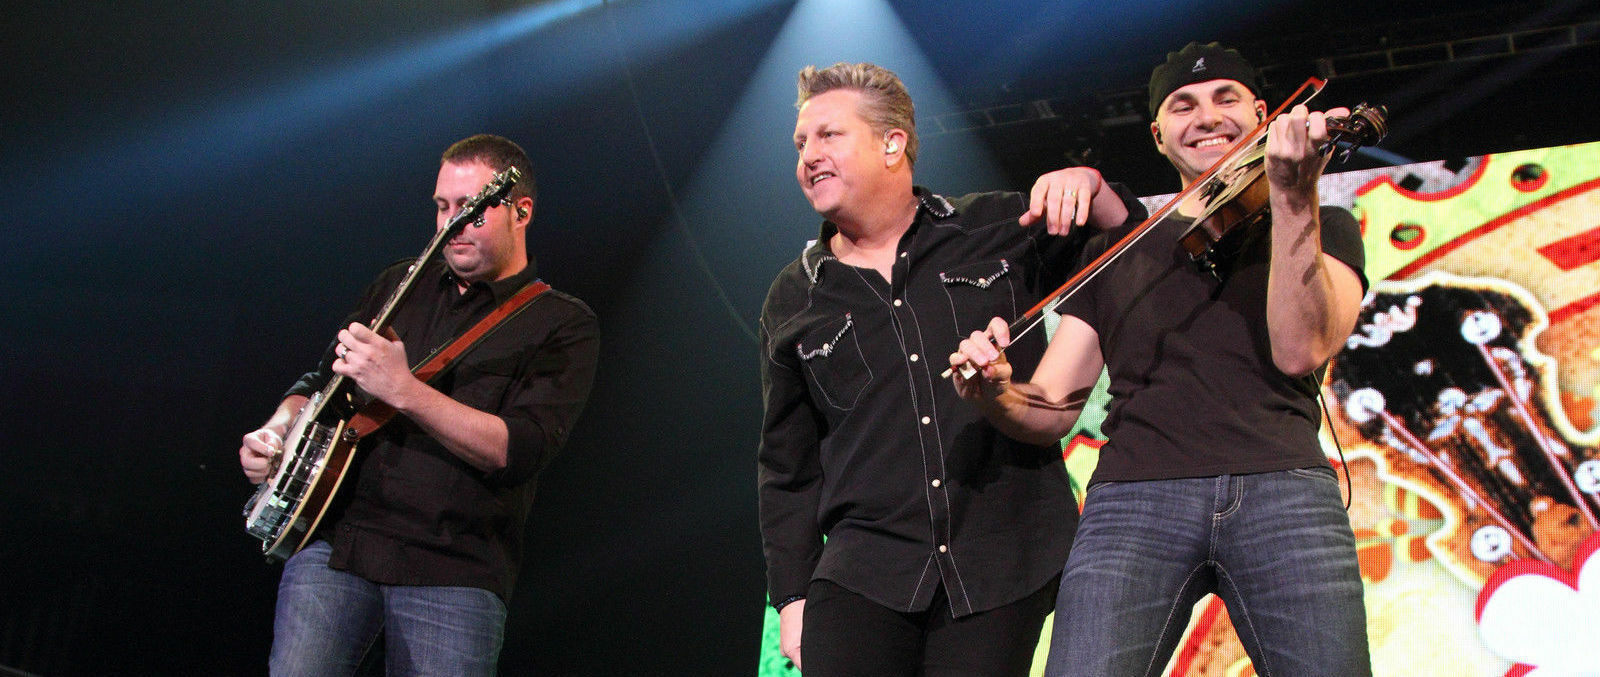 107.7 GNA Countryfest Featuring Rascal Flatts and more